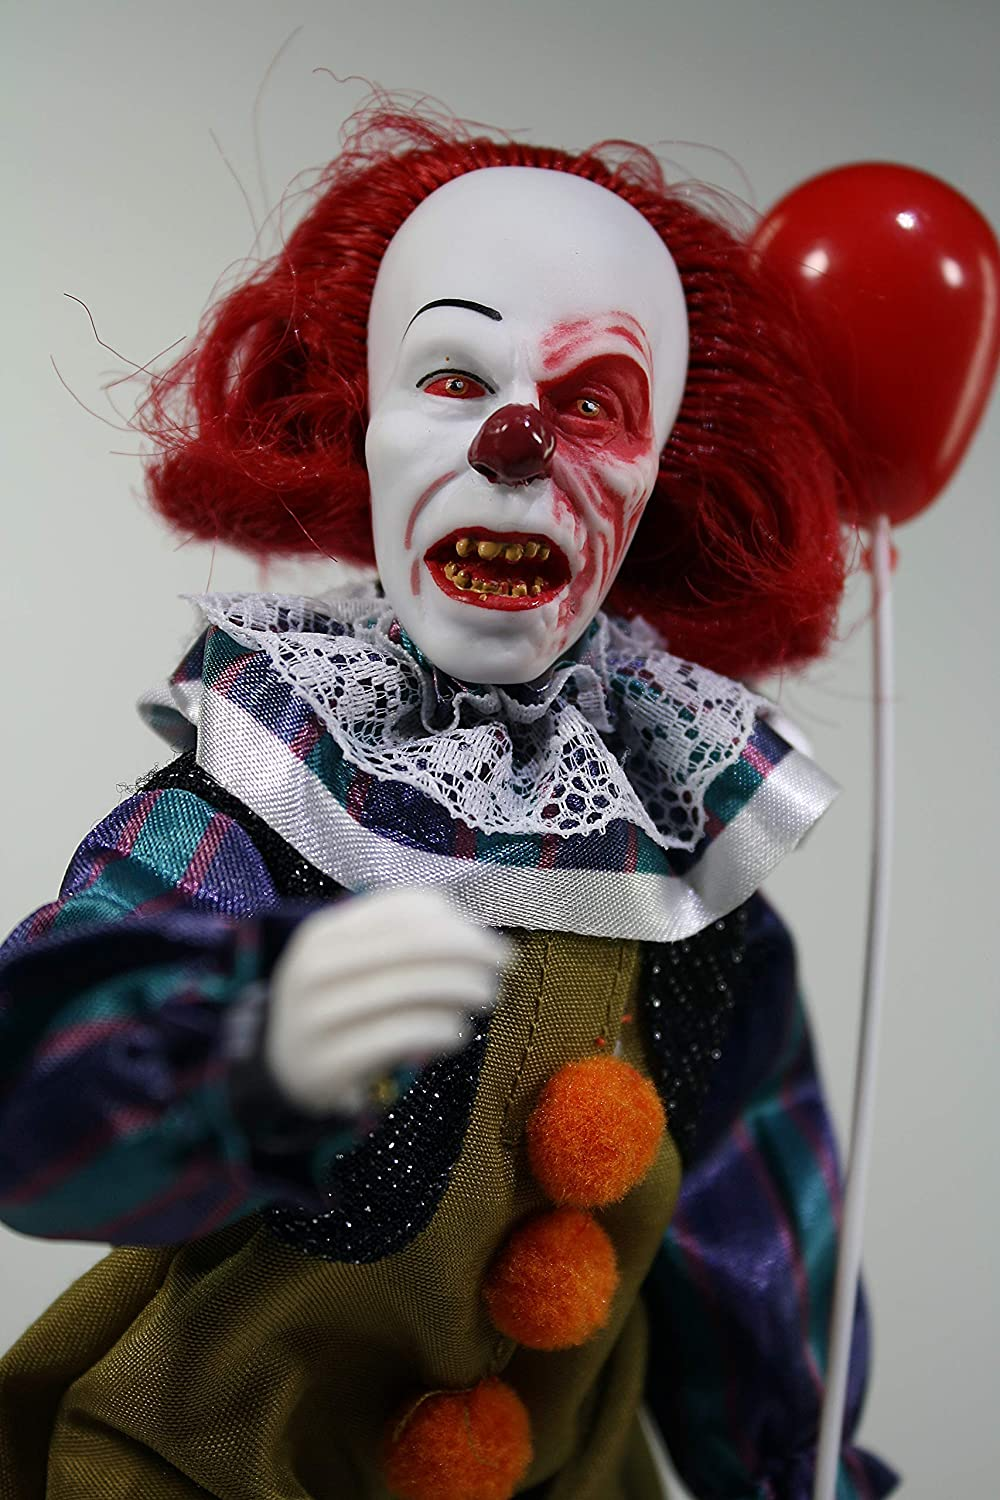 Mego Figurine Grippesou Pennywise 1990 Version2020 Photo5